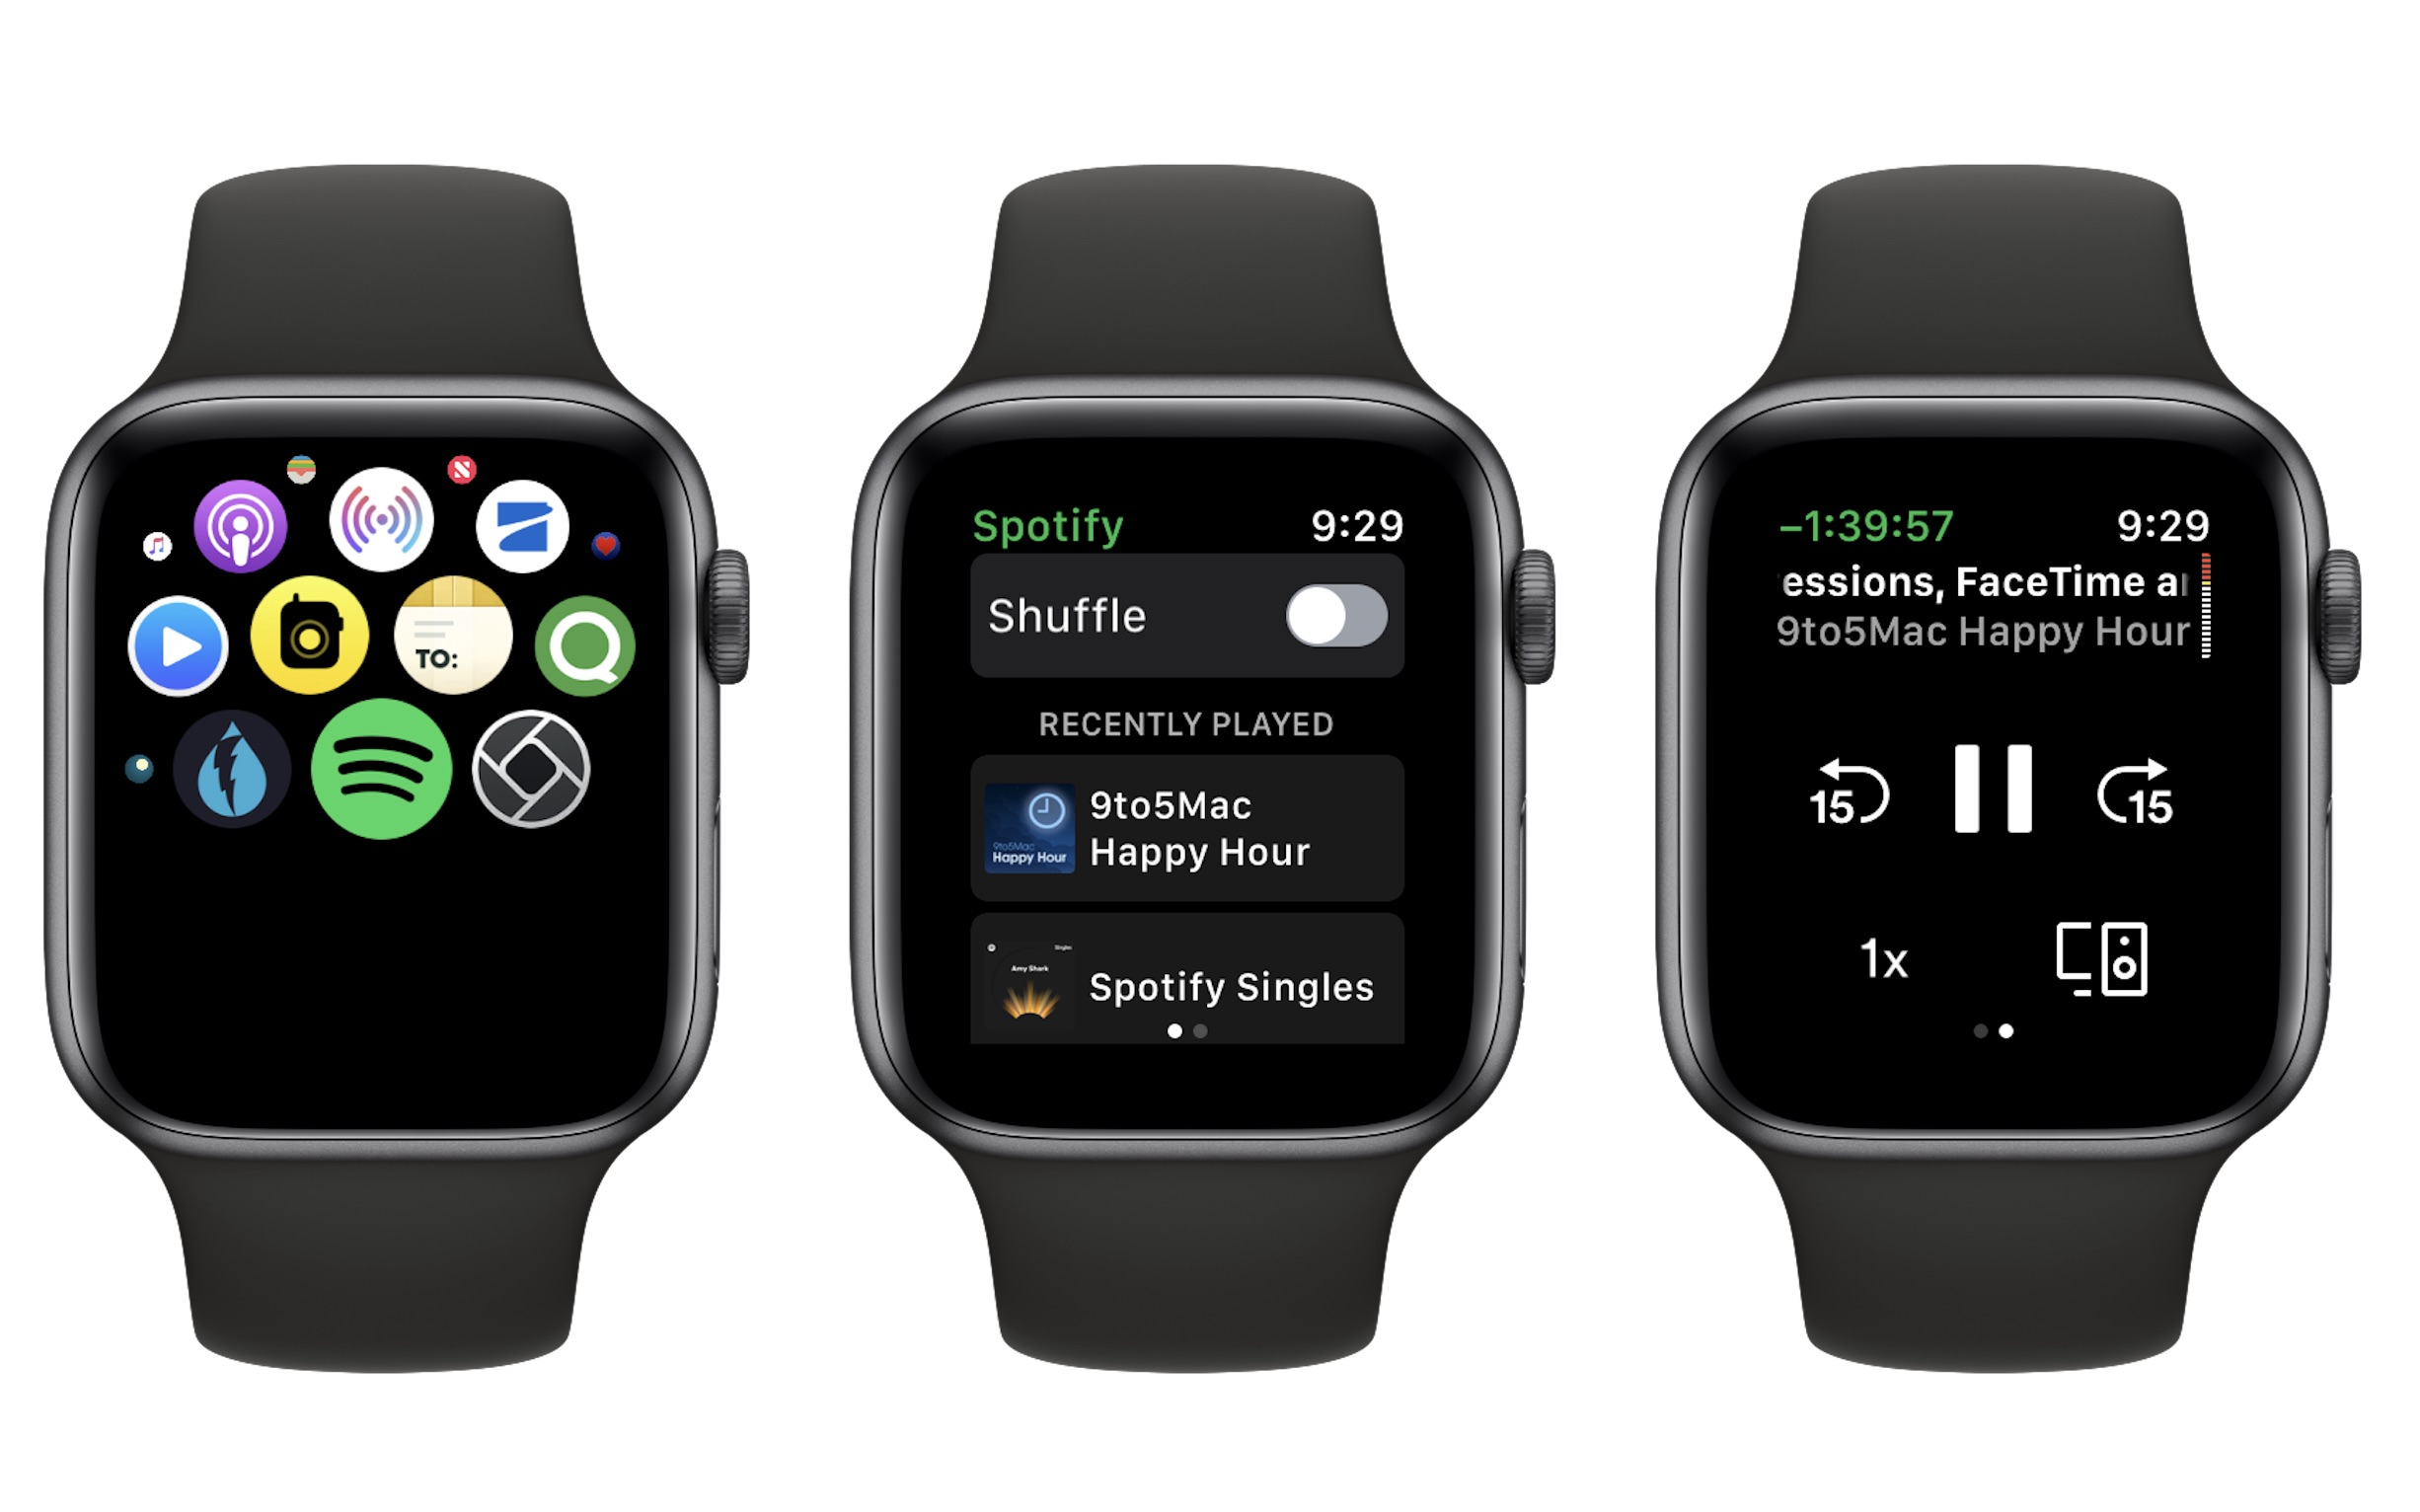 Spotify Apple Watch app